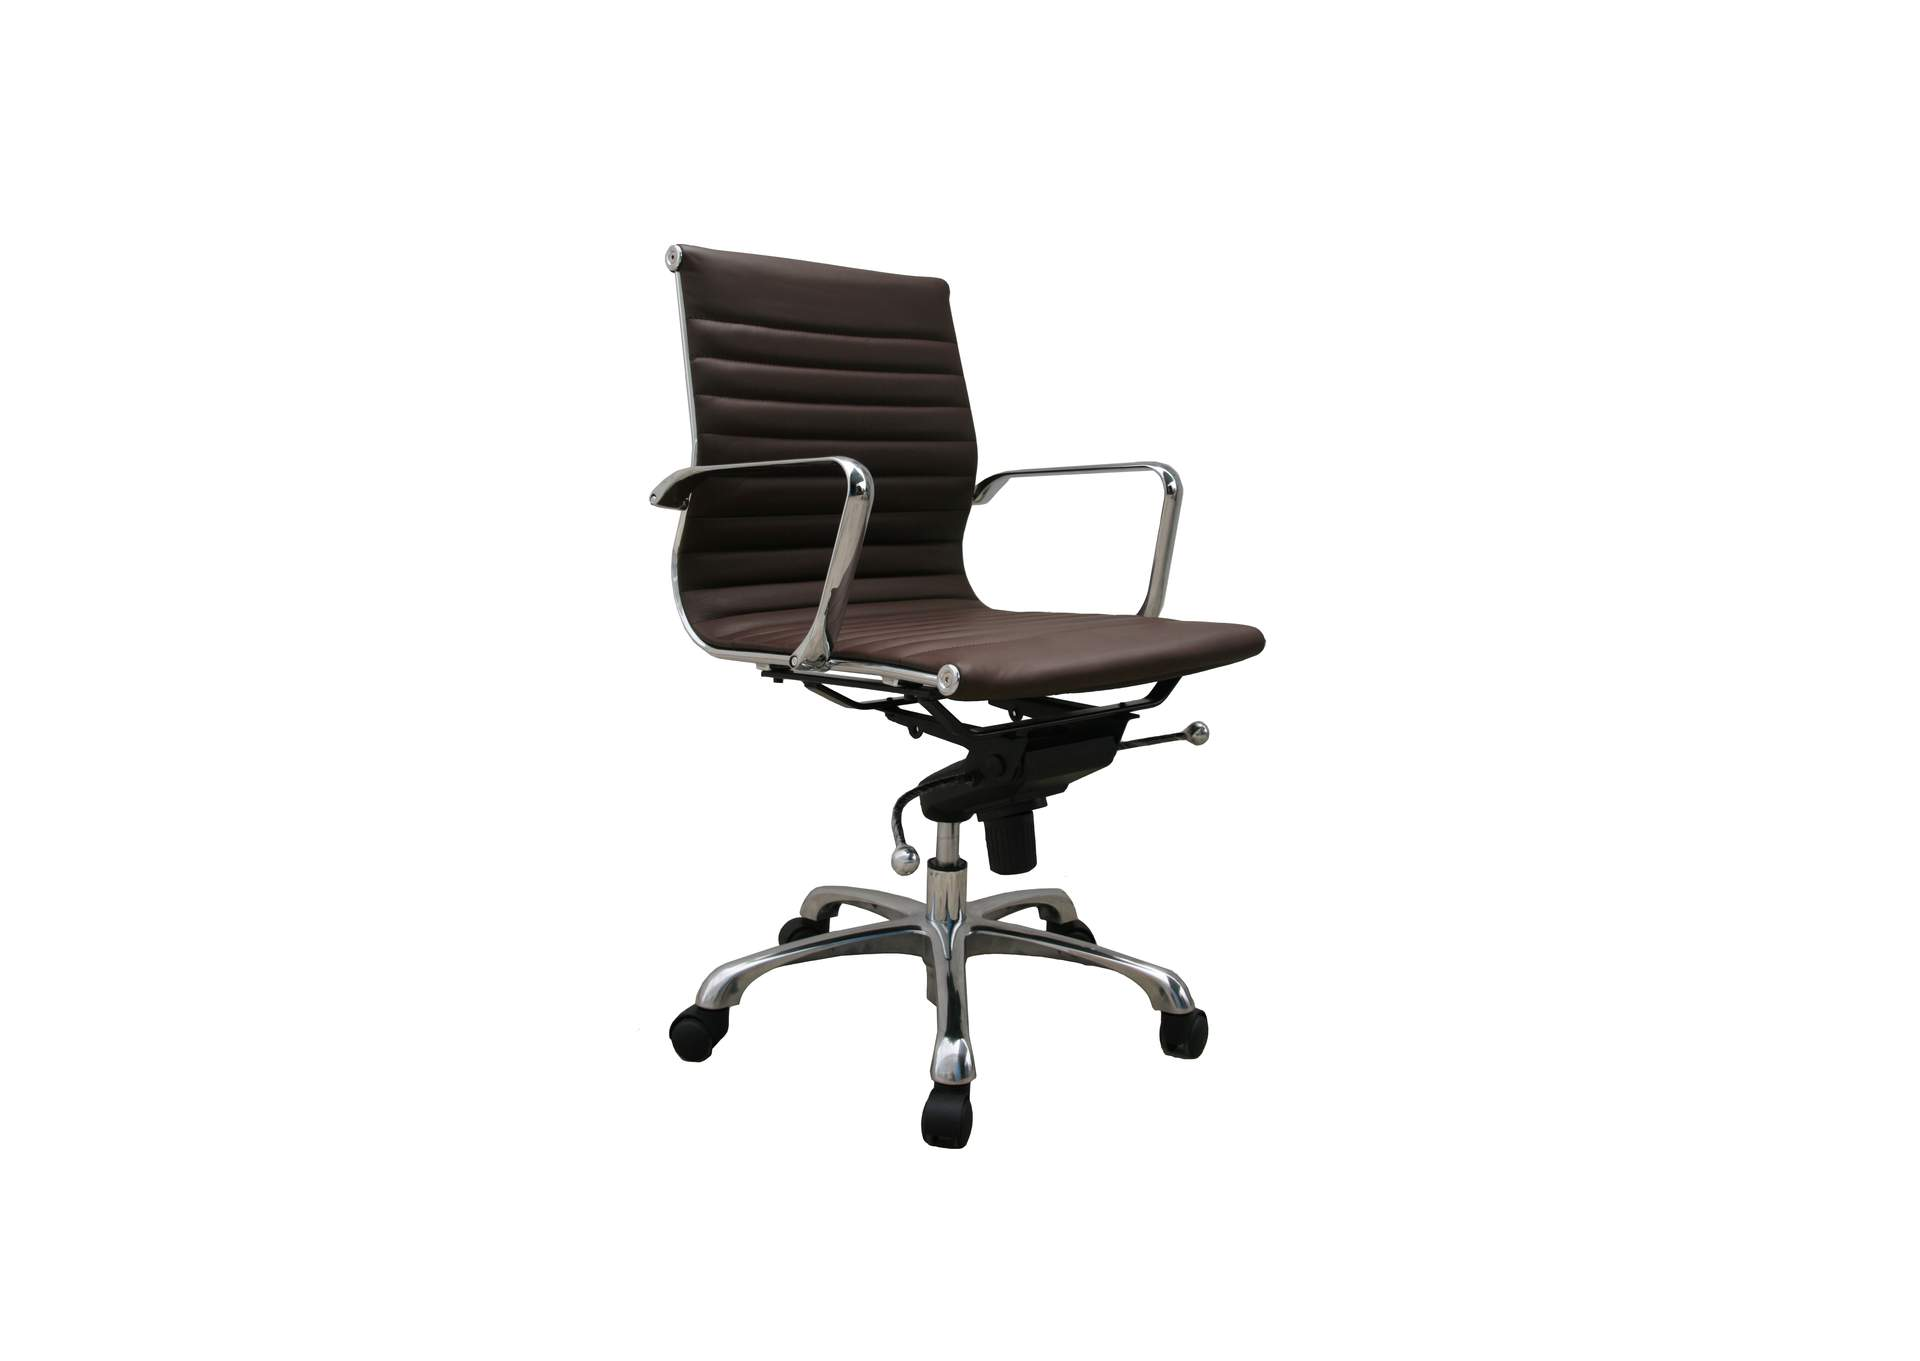 Comfy Low Back Brown Office Chair,J&M Furniture